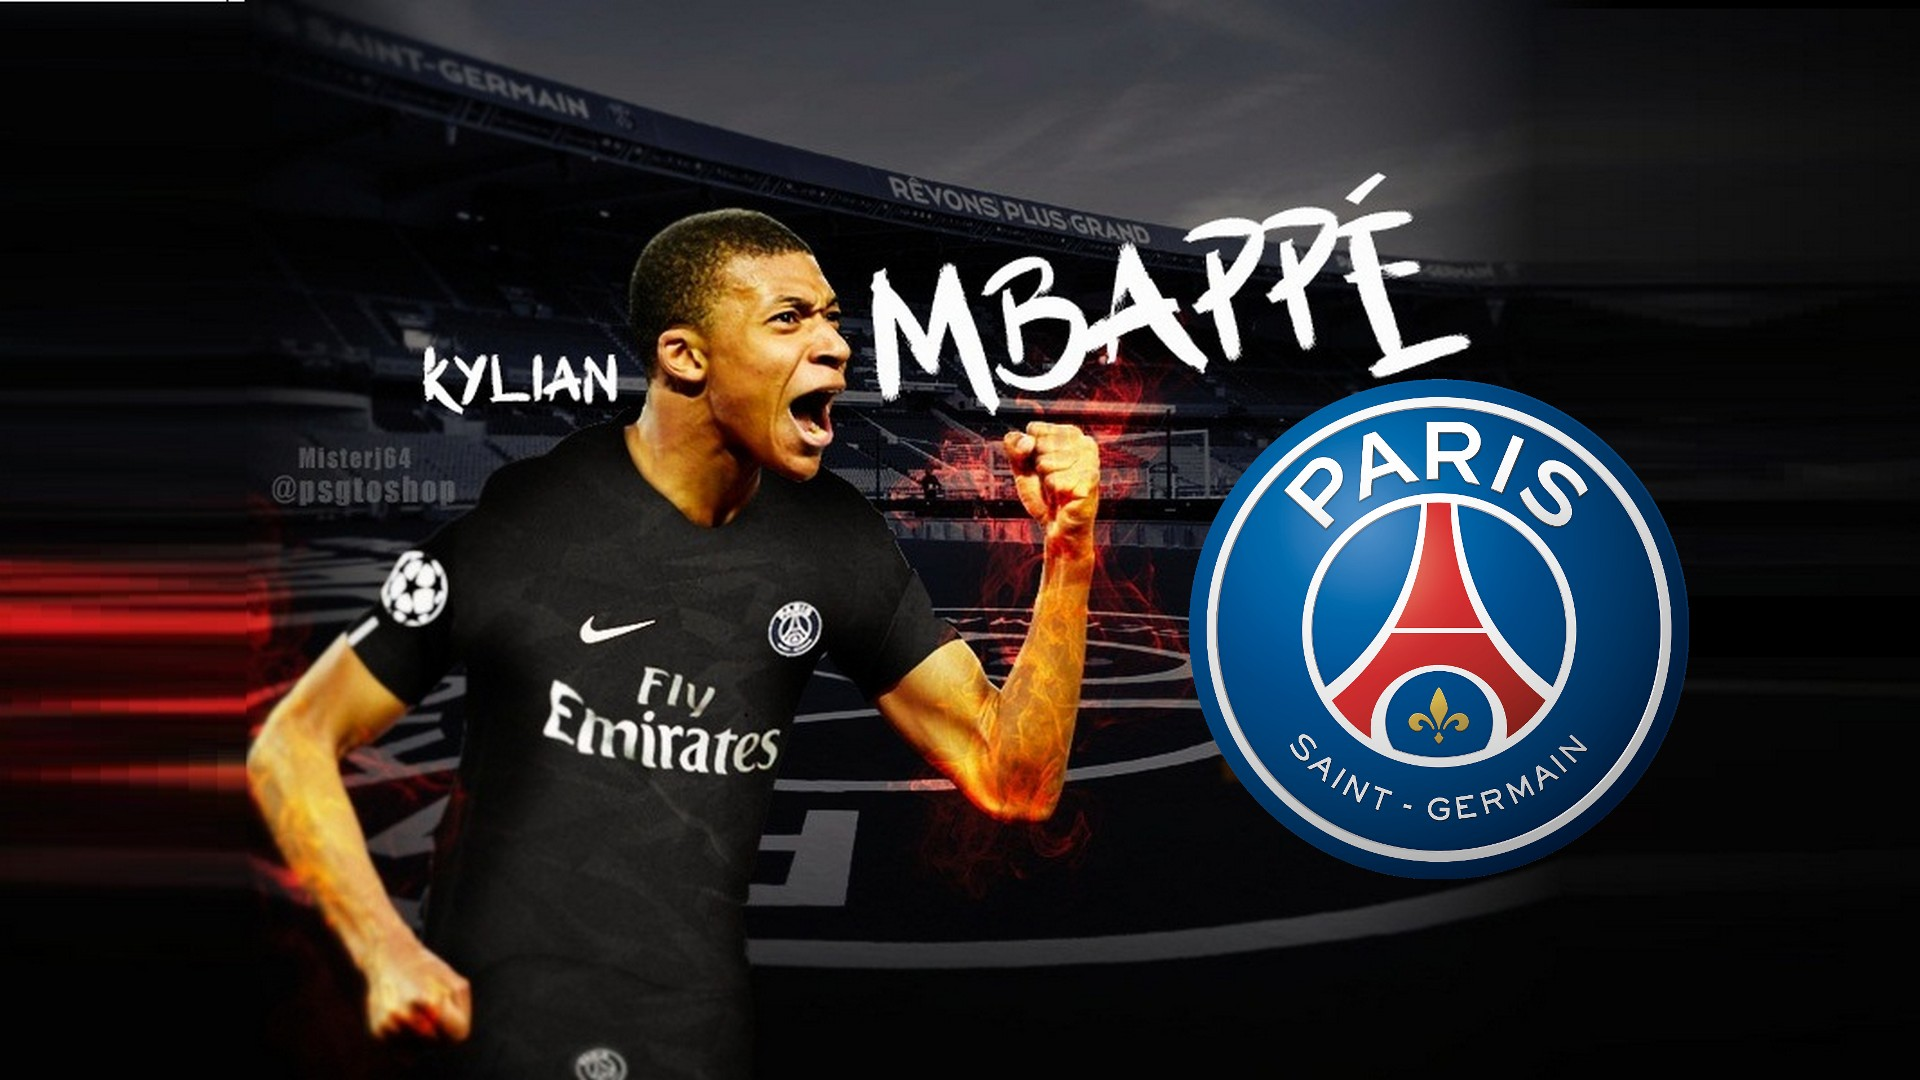 psg kylian mbappe mac backgrounds